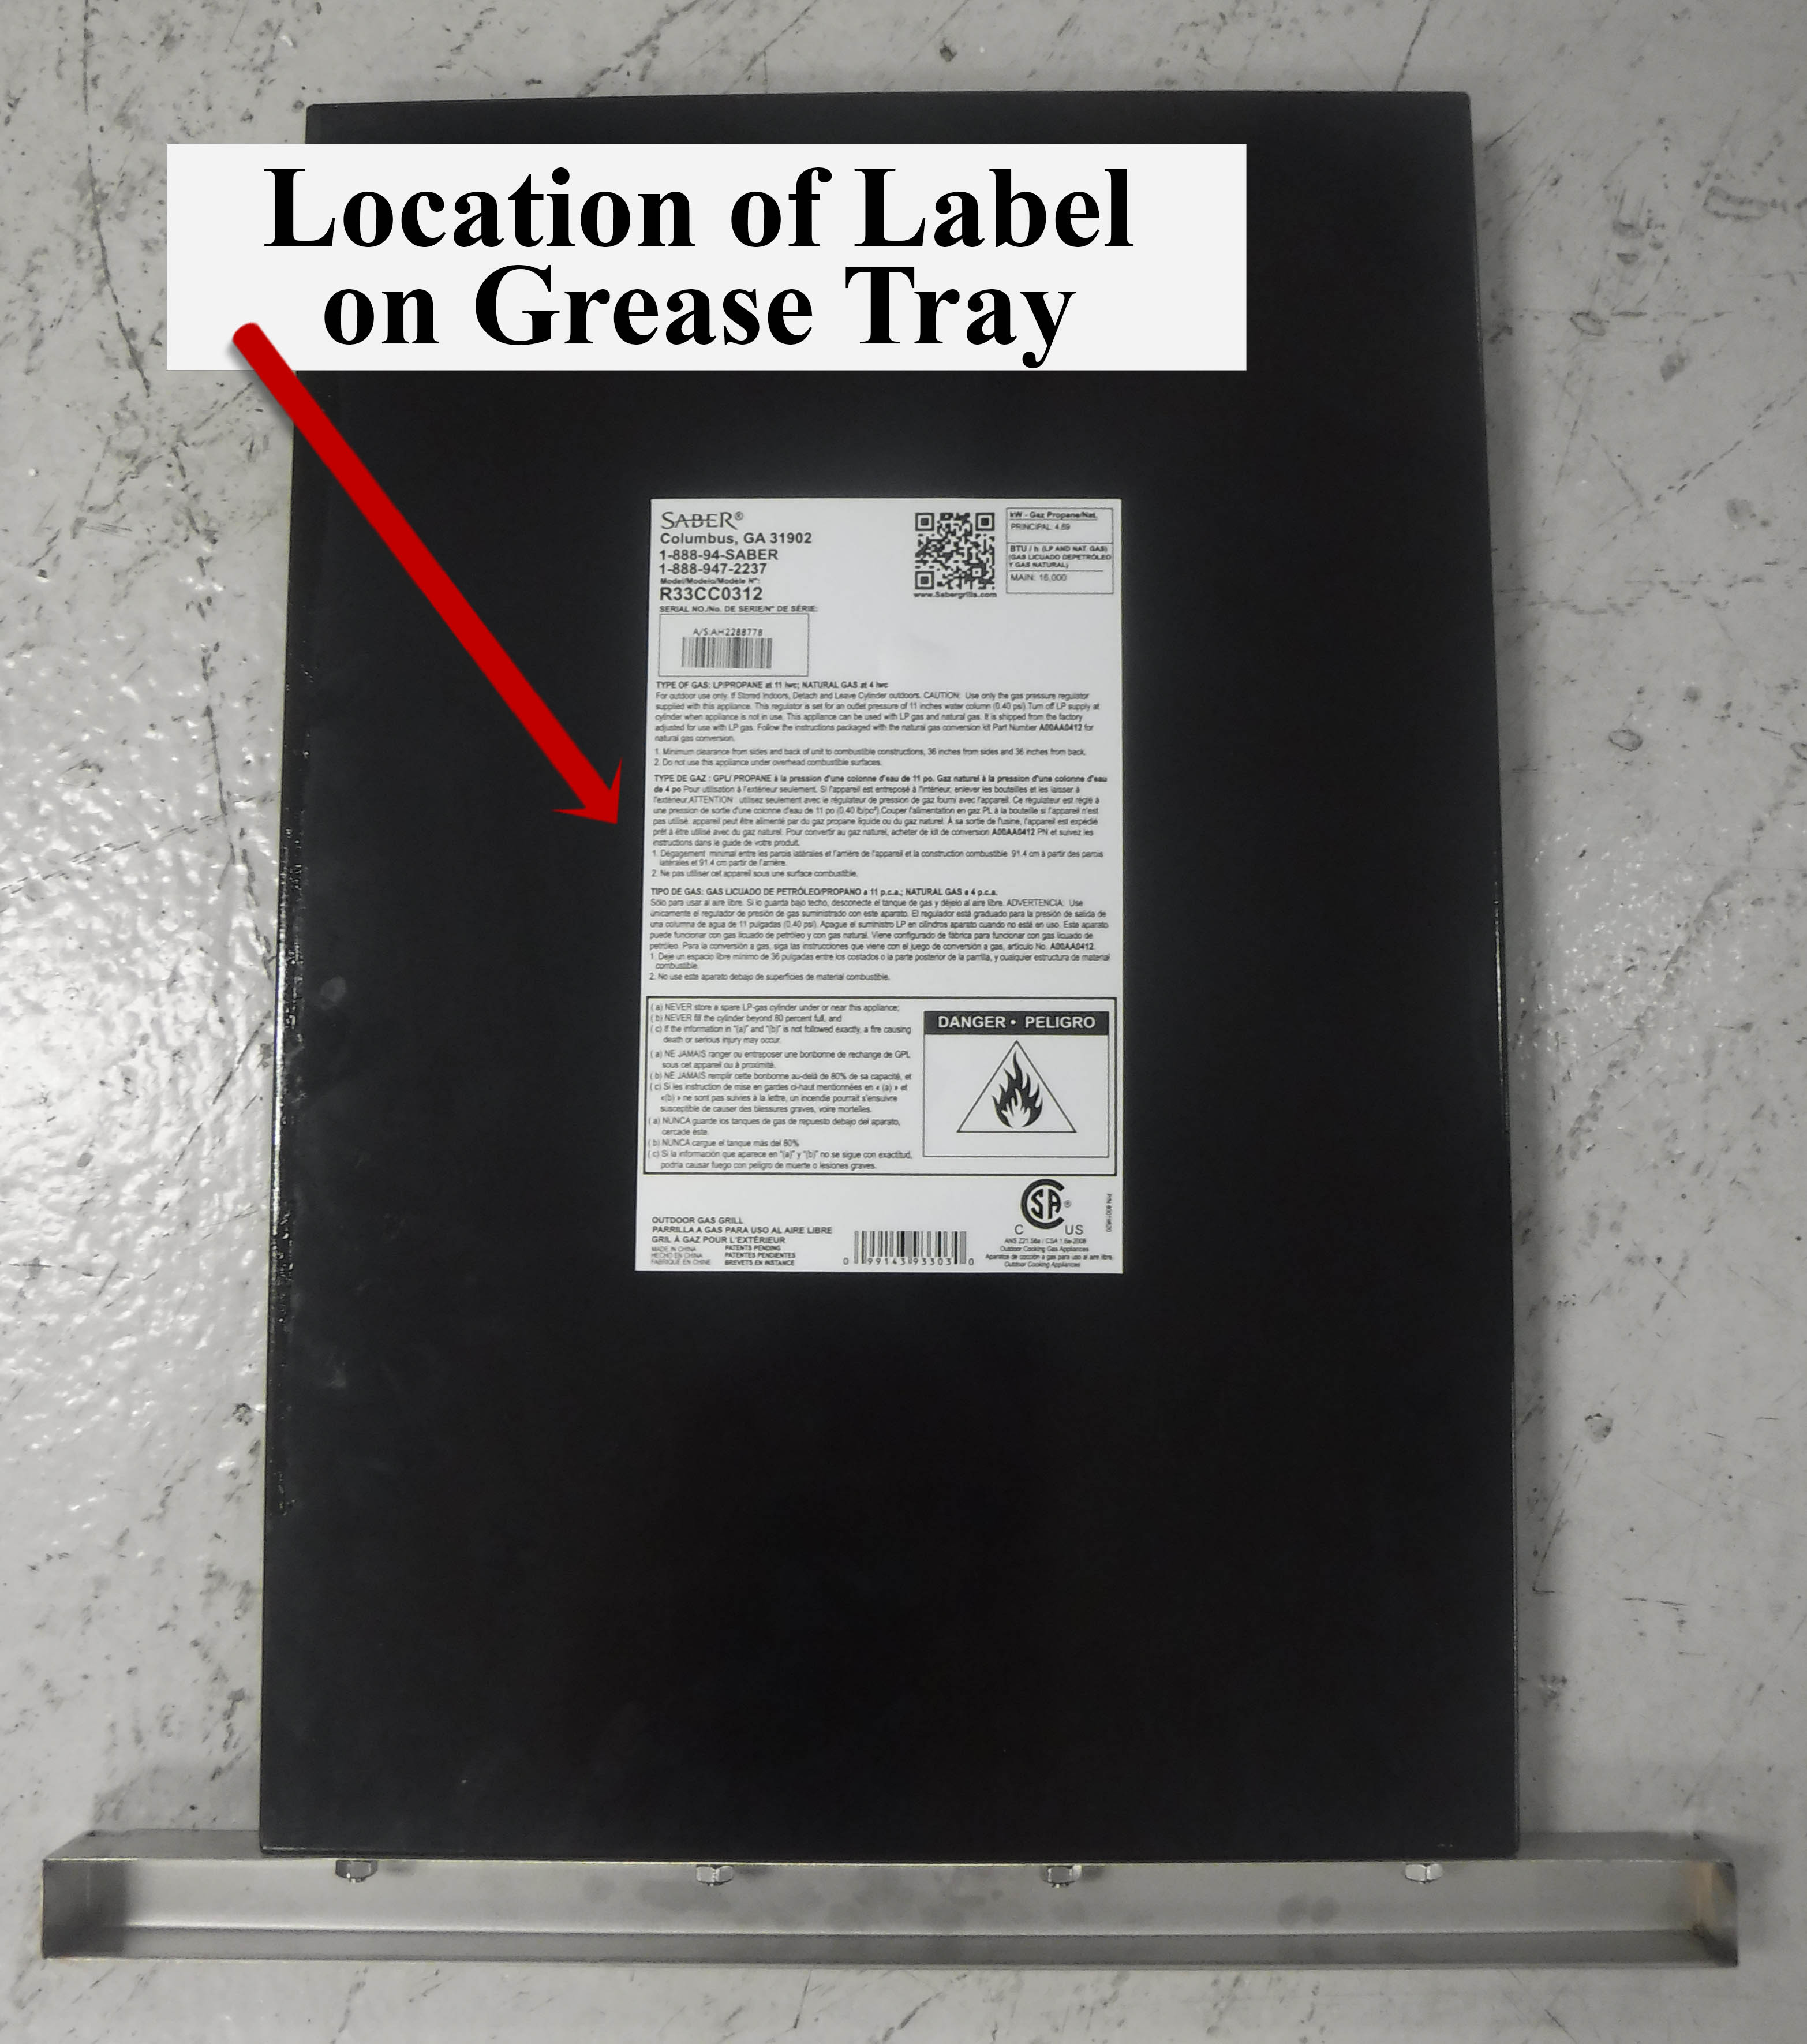 Label on underside of grease tray